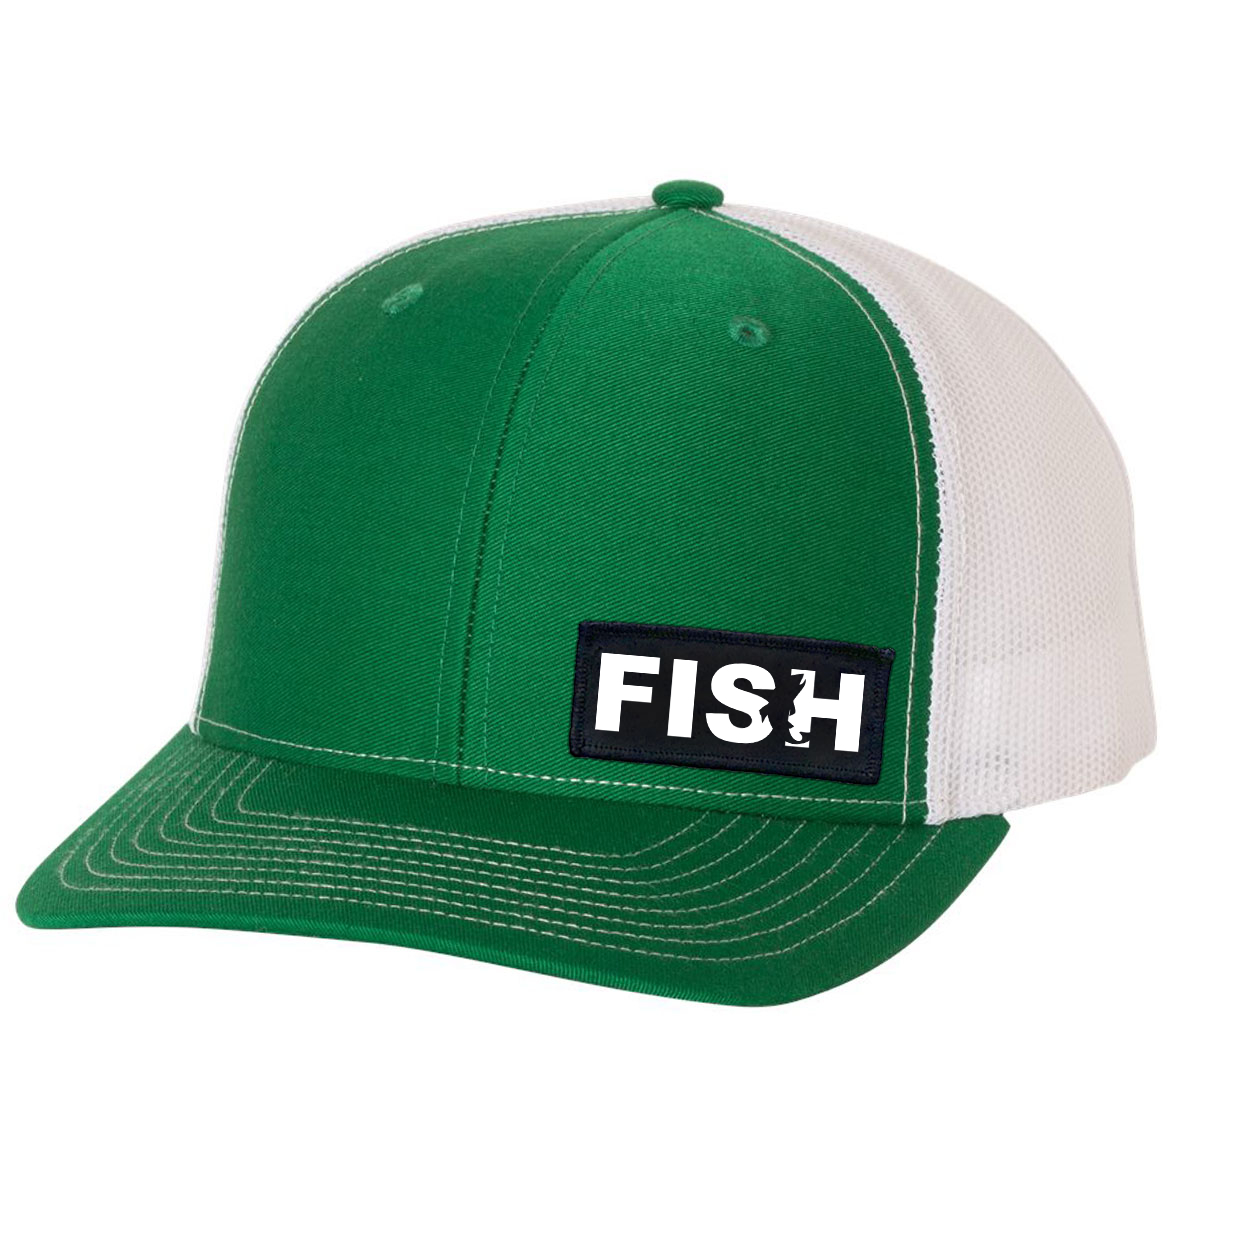 Fish Catch Logo Night Out Woven Patch Snapback Trucker Hat Green/White (White Logo)